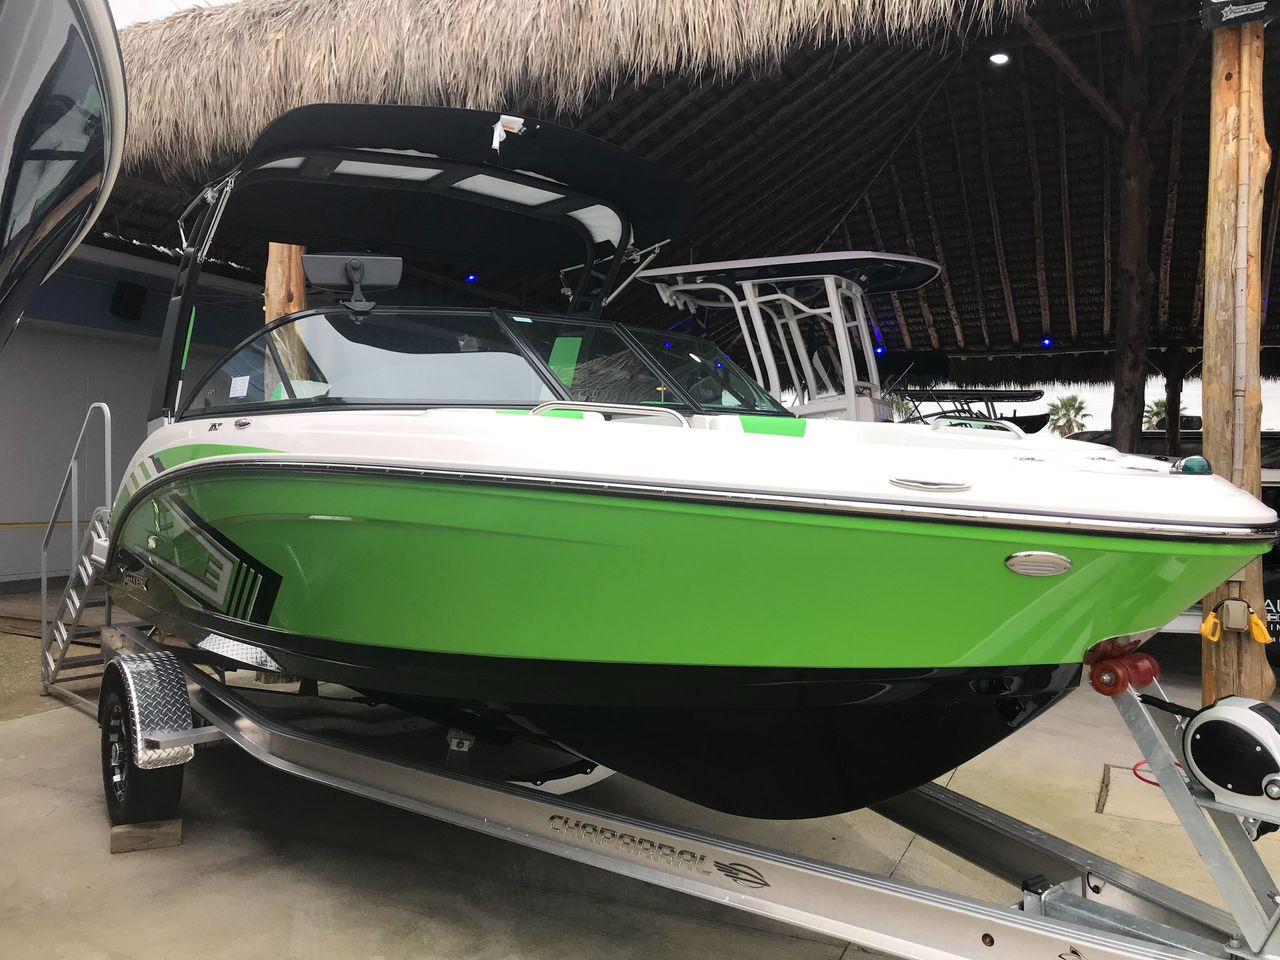 2019 New Chaparral 203 Vortex VRX High Performance Boat For